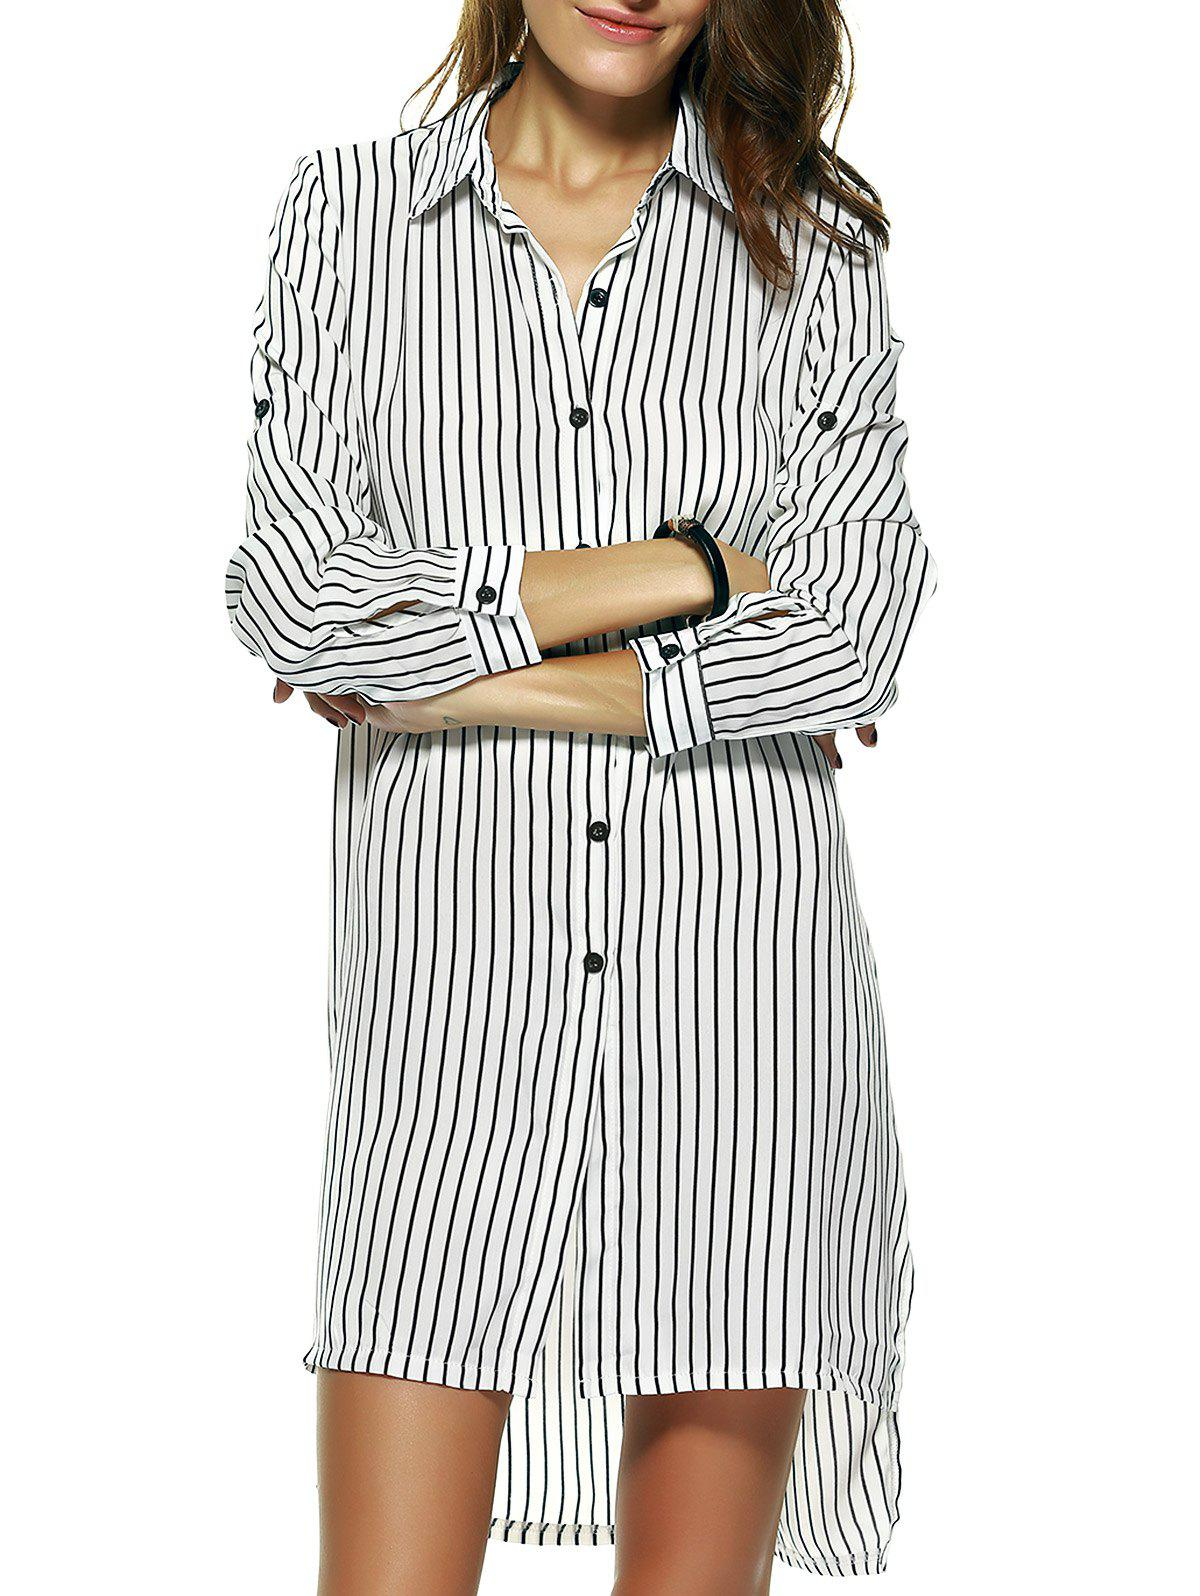 Brief Women's Striped Side Slit Shirt Dress - XL STRIPE